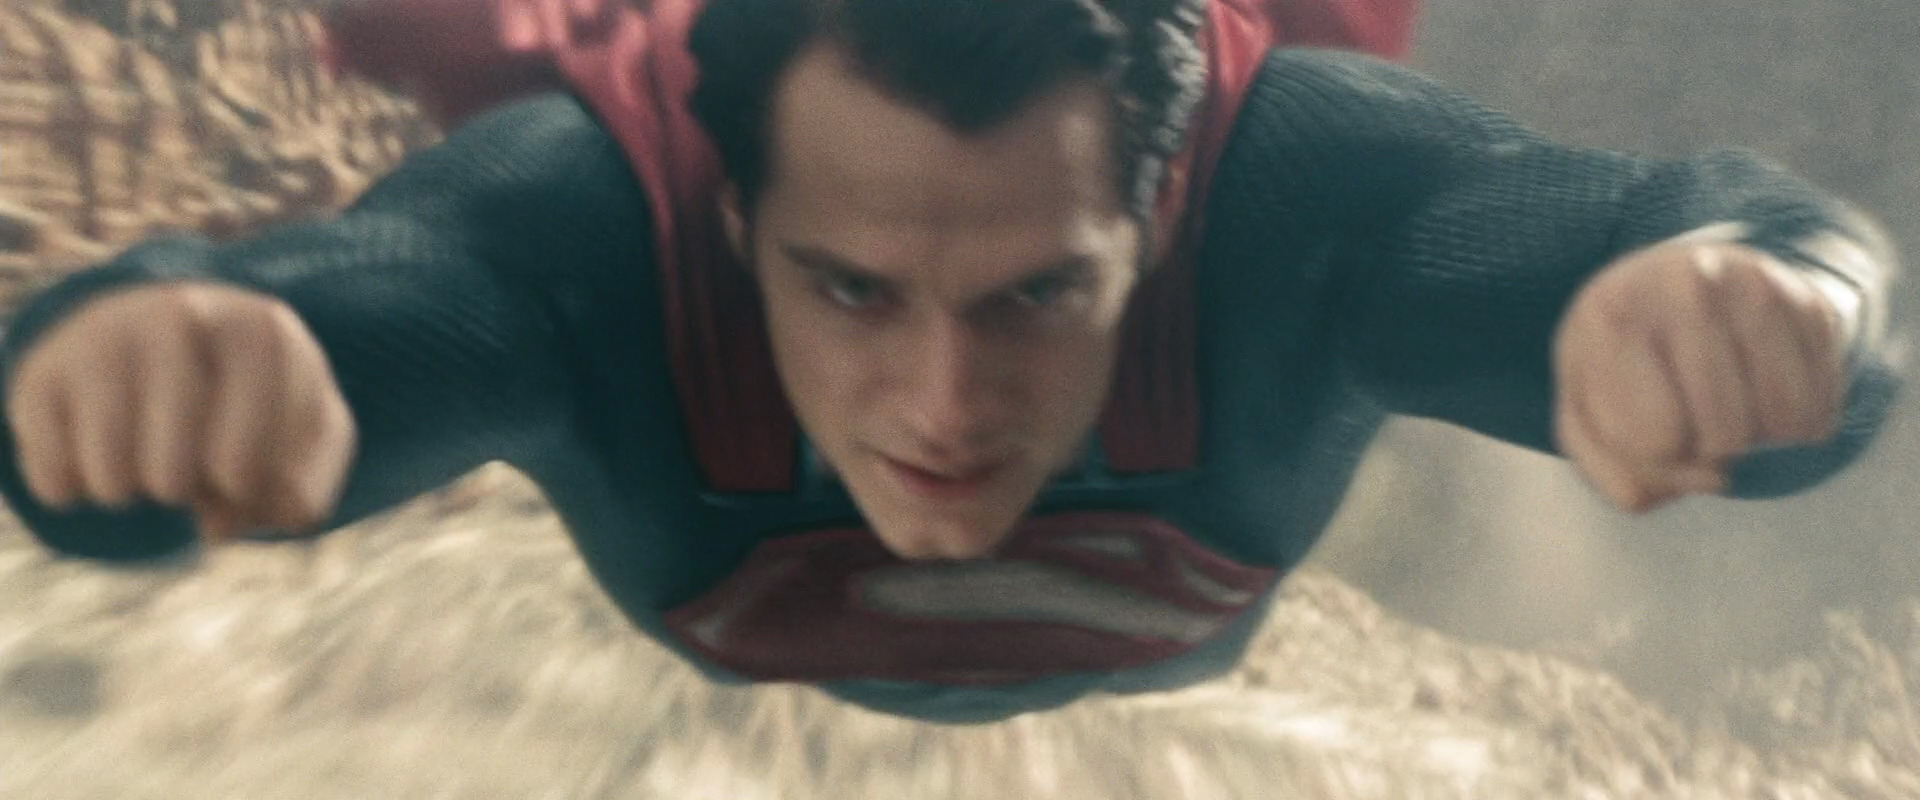 DCEU scenes, When Superman takes his first Flight as he discovers his powers in Man of Steel (2013)